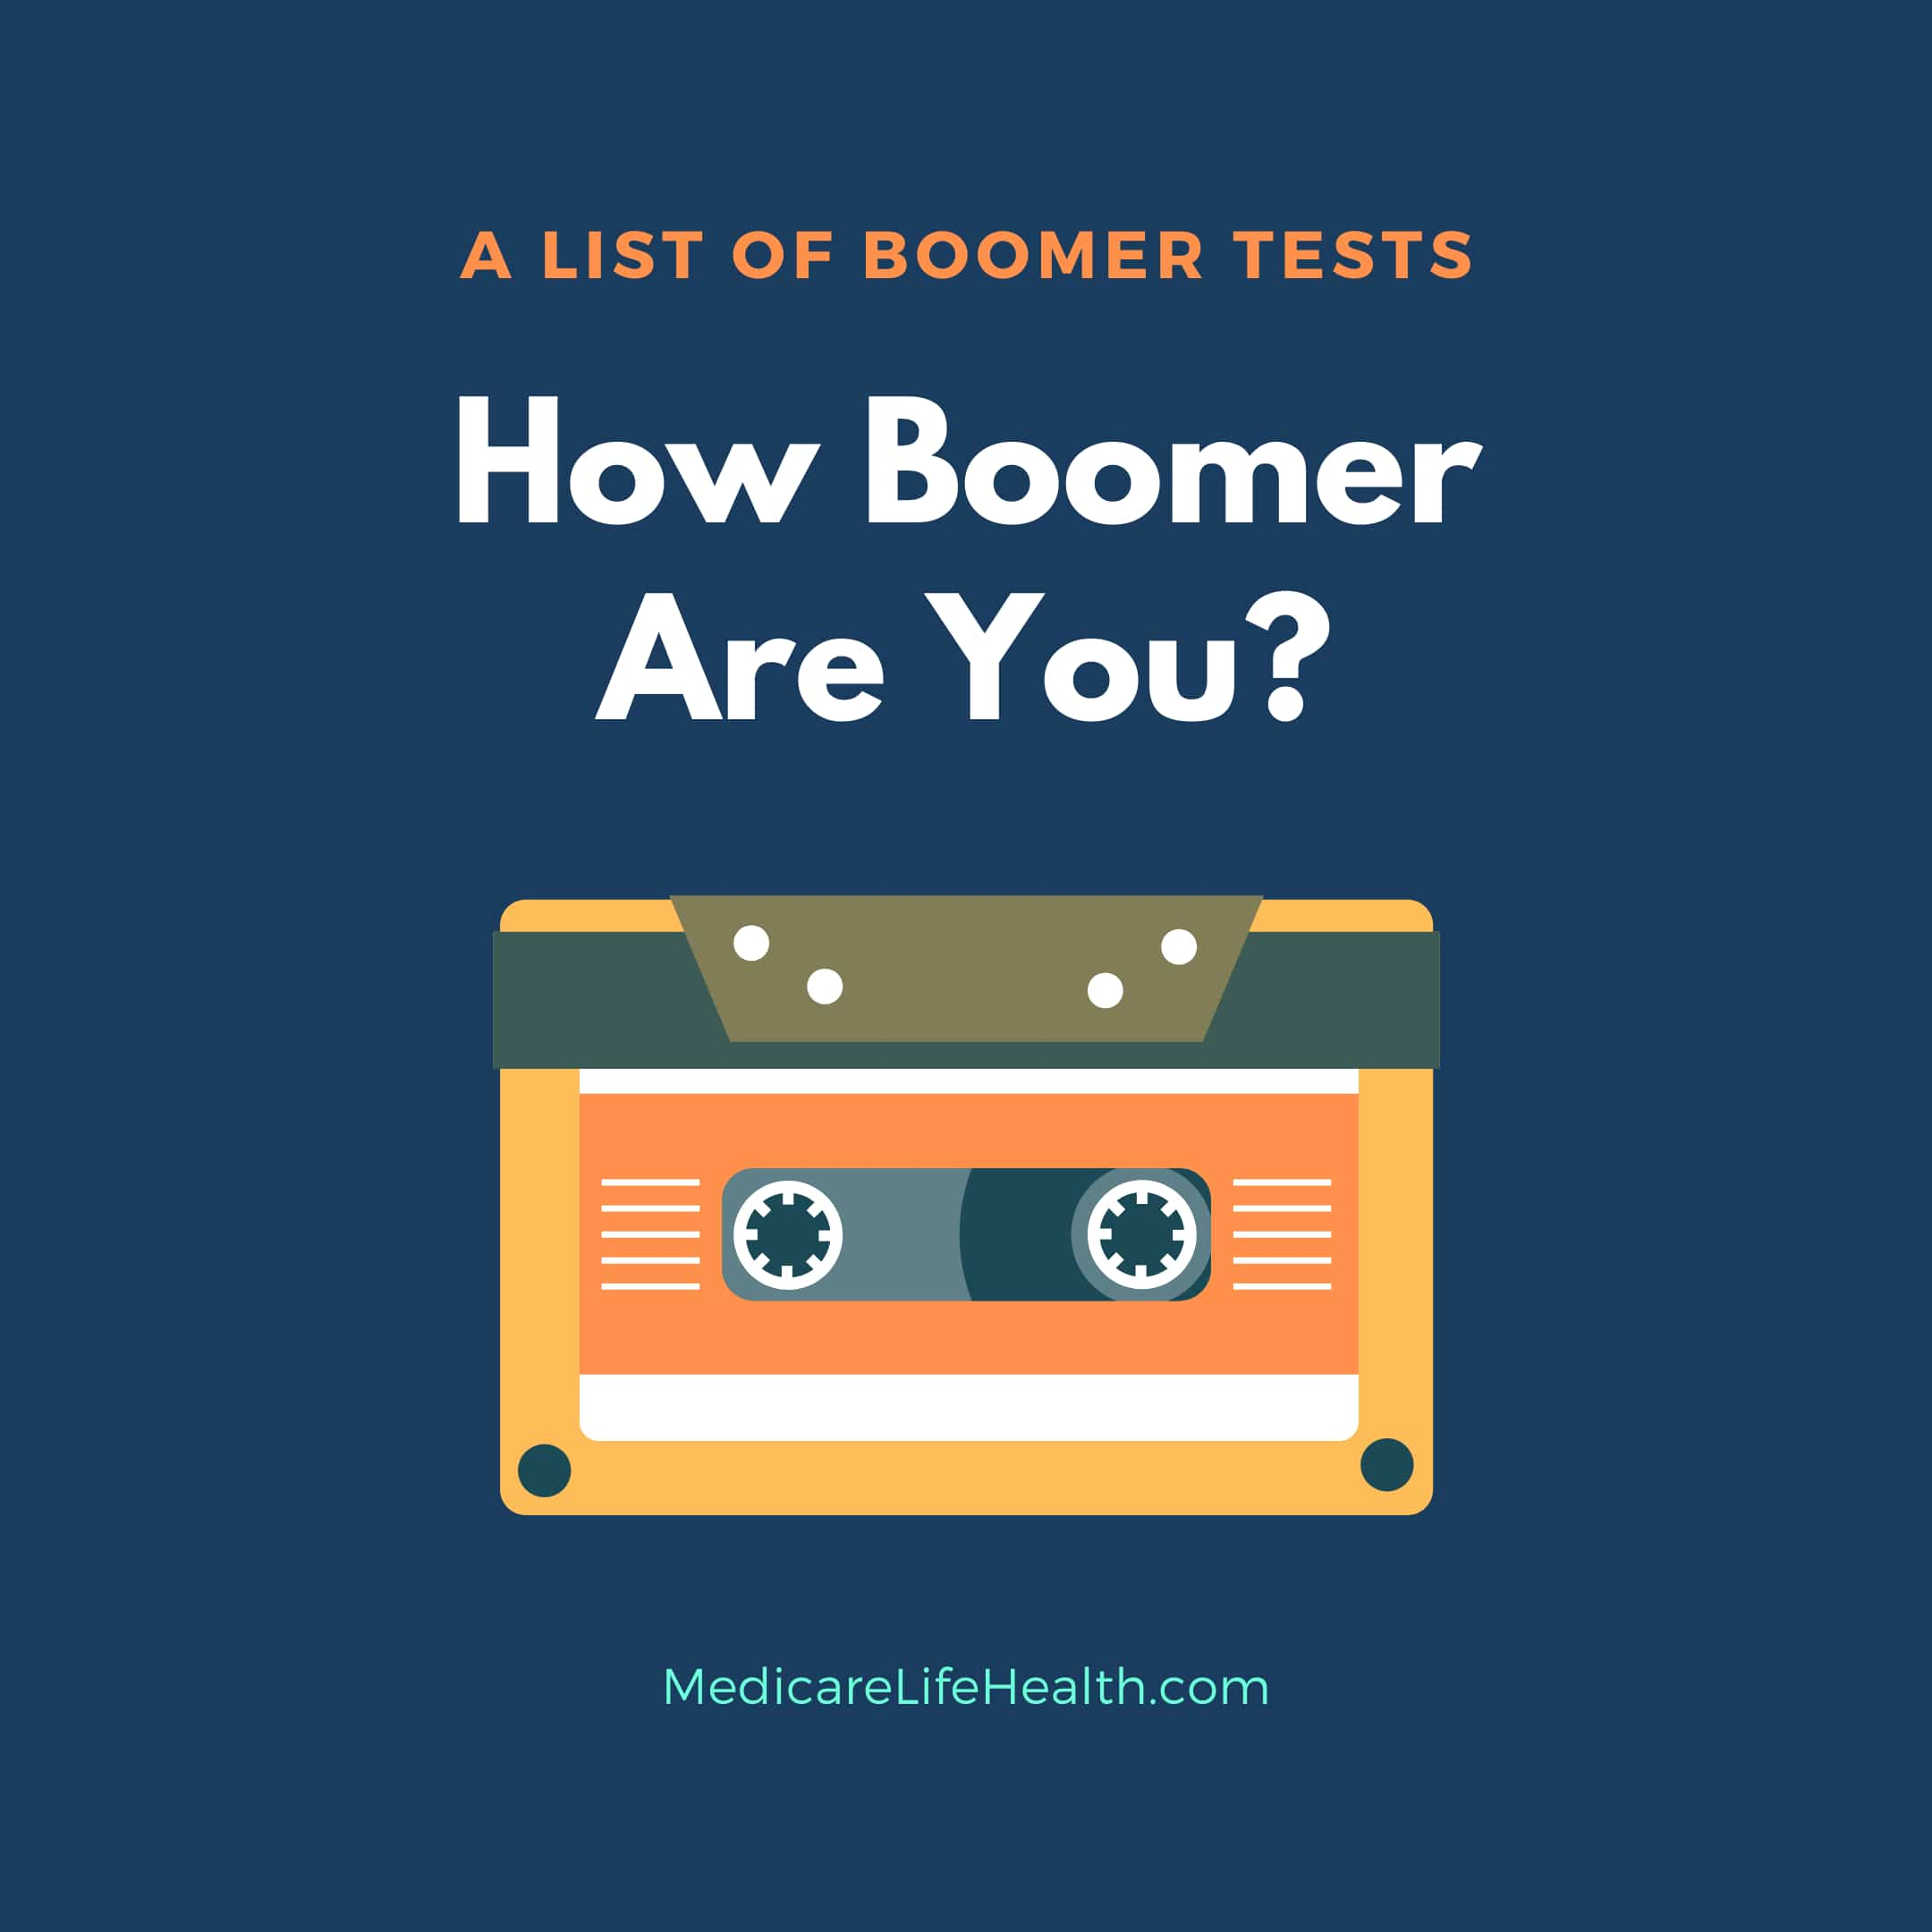 A boomer test list to find our how boomer you are